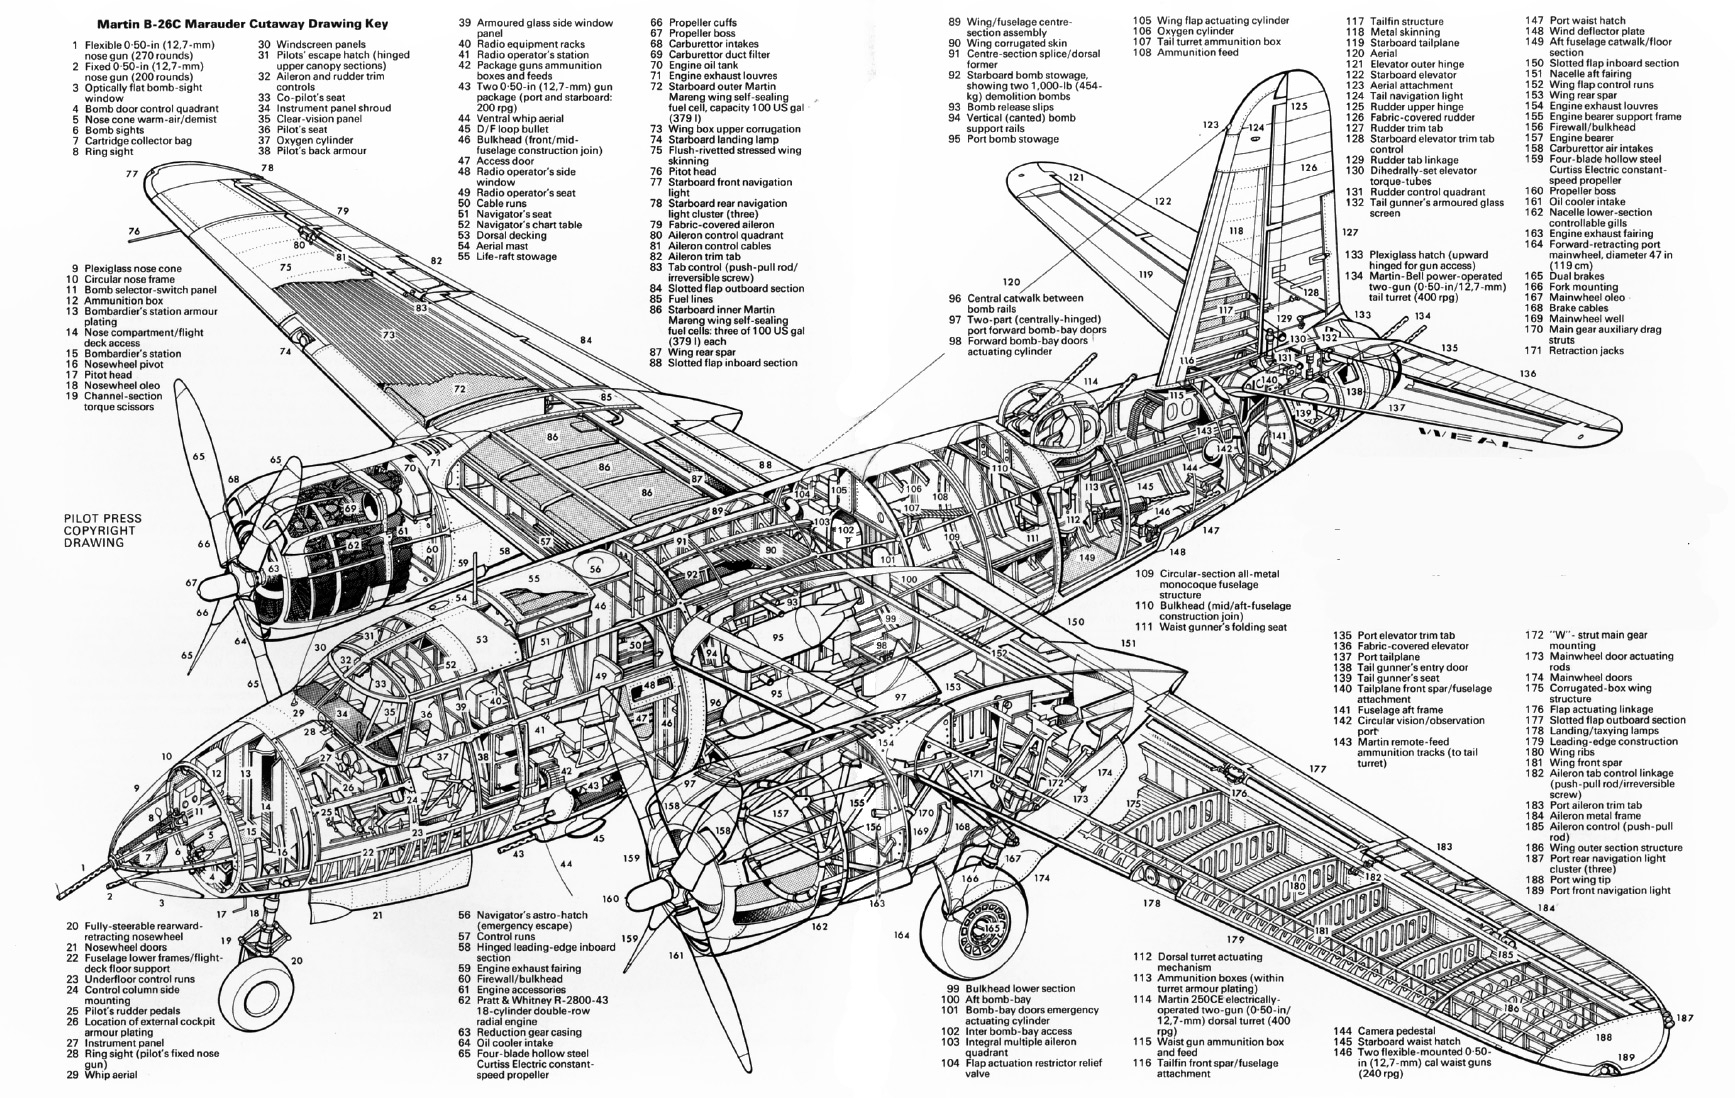 stations of the cross coloring pages - cutaway martin b 26c marauder